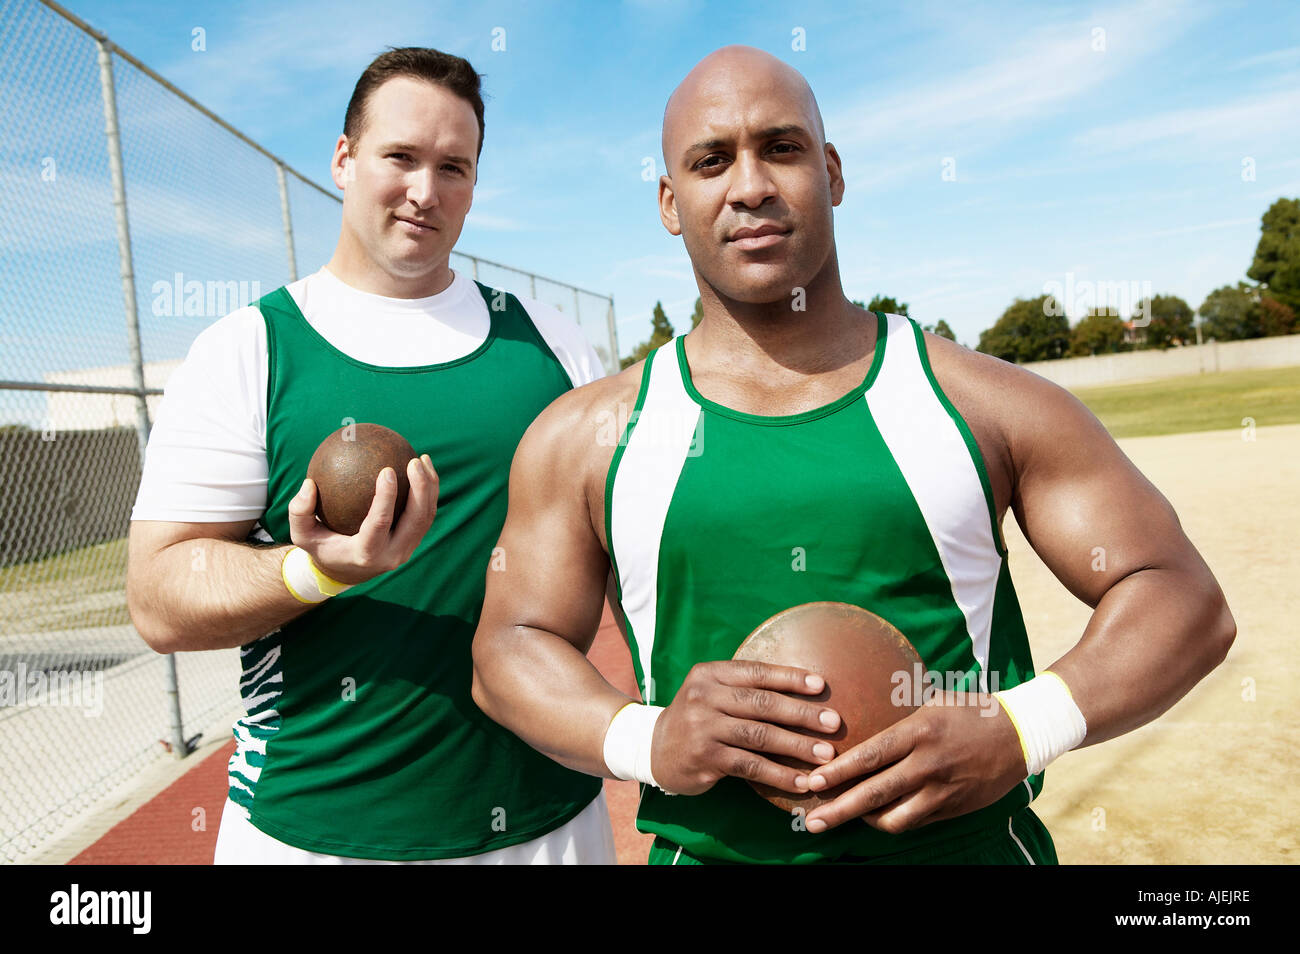 Shot Putters holding shot put and discus, half length - Stock Image